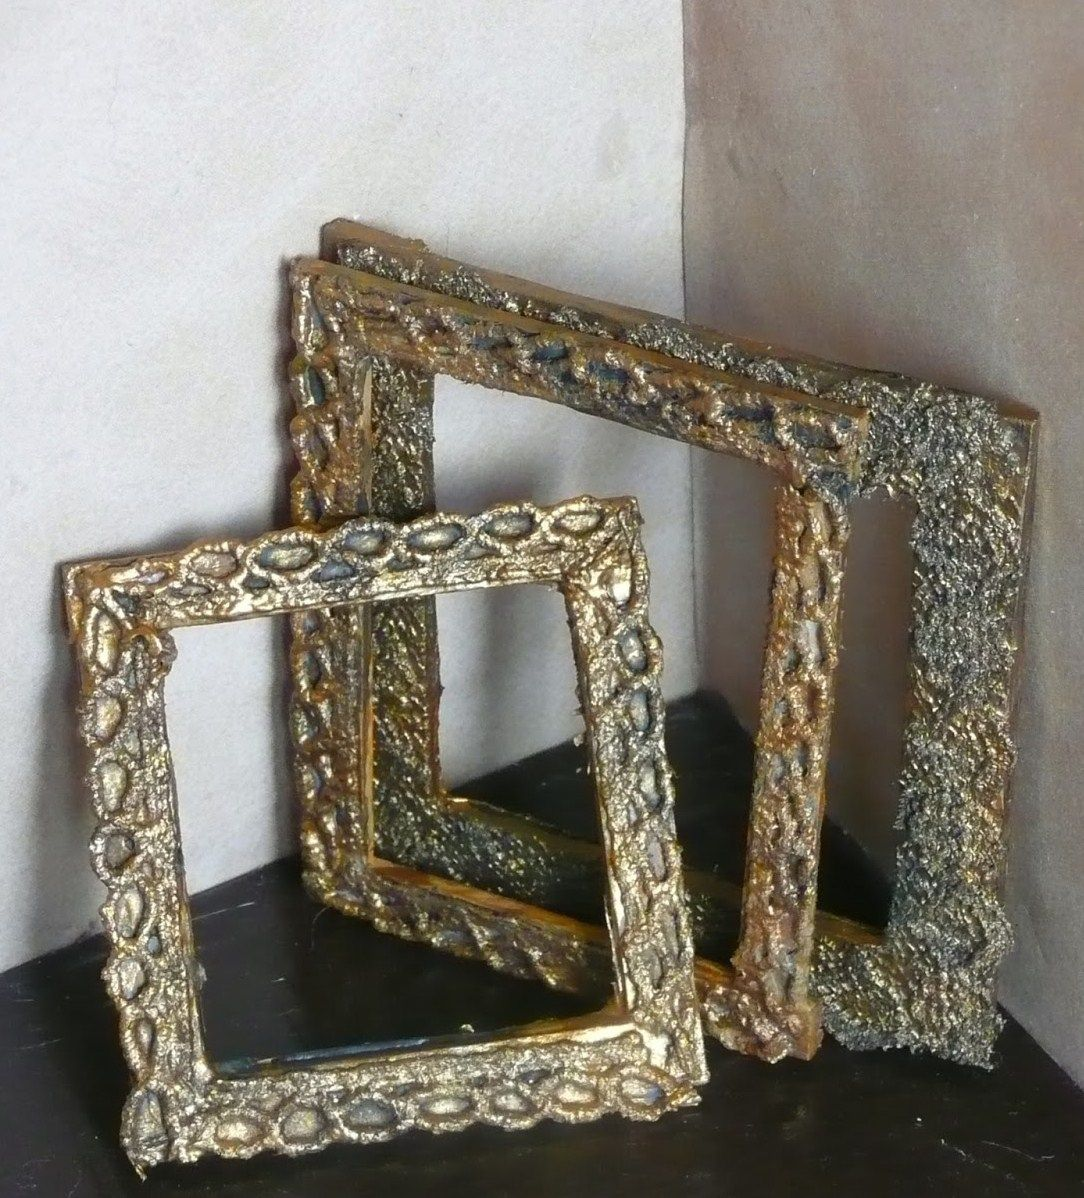 how to: picture frames from craft sticks and lace #diy #tutorial #howTo #pictureFrames #frames #dollshouse #doll #blythe #pullip #miniature #videoTutorial #dollhouse #dollhouseminiaturetutorials